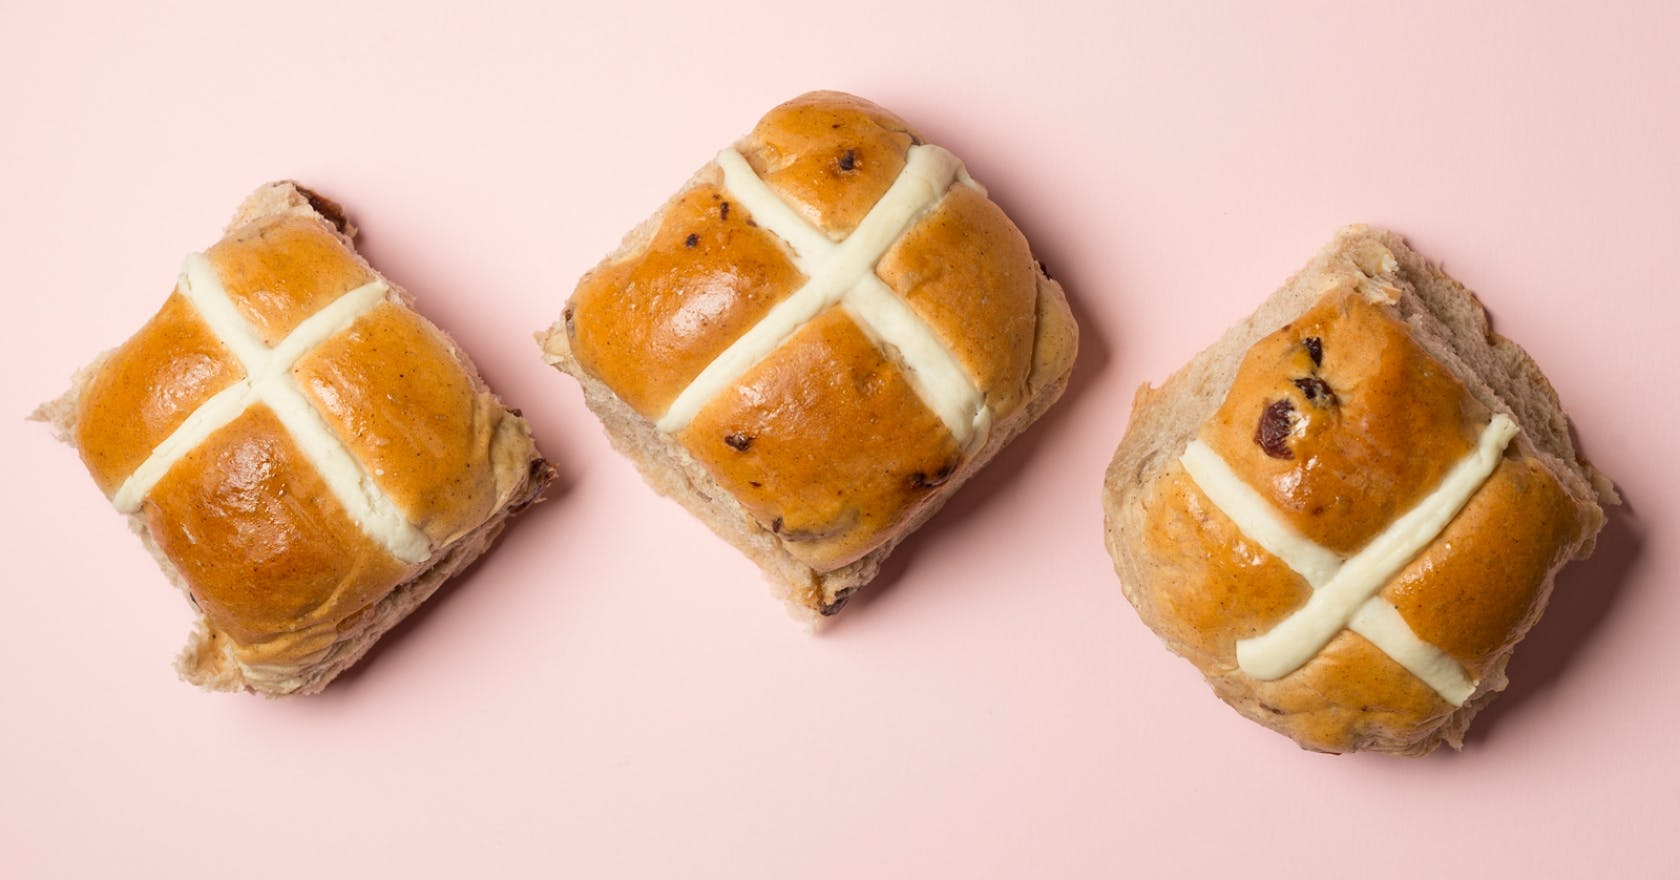 Hot cross buns: how do you eat yours?